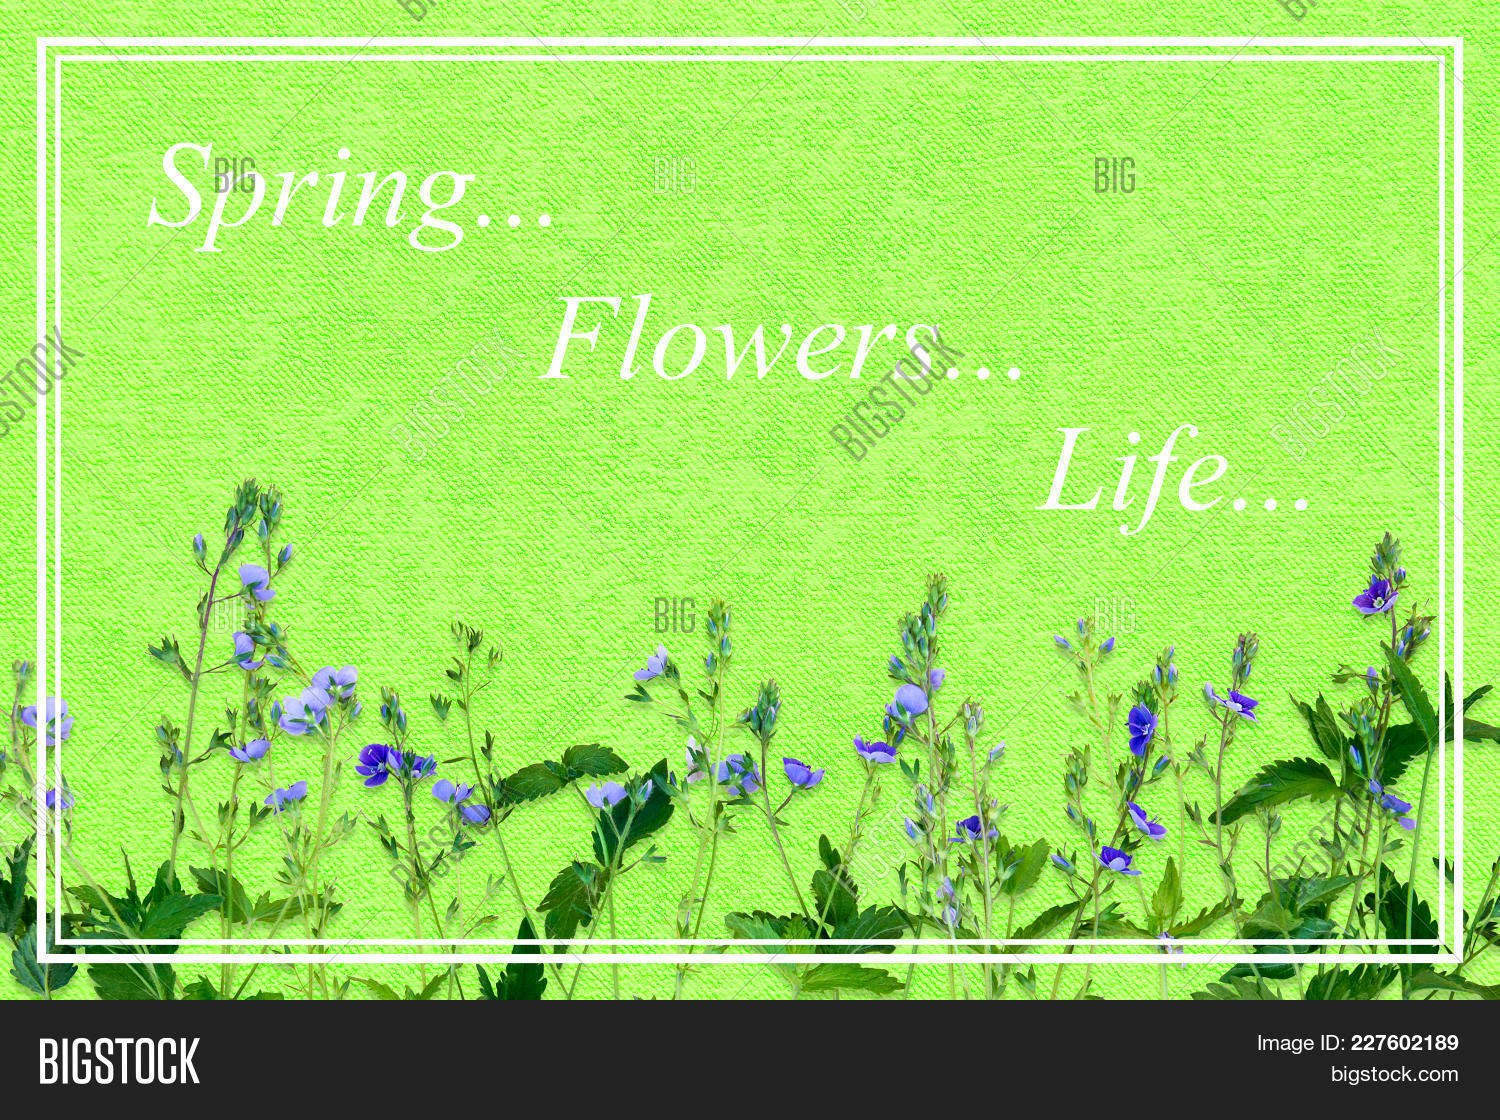 Spring background image photo free trial bigstock spring background with small purple flowers the name of the flower veronica chamaedrys rectangular izmirmasajfo